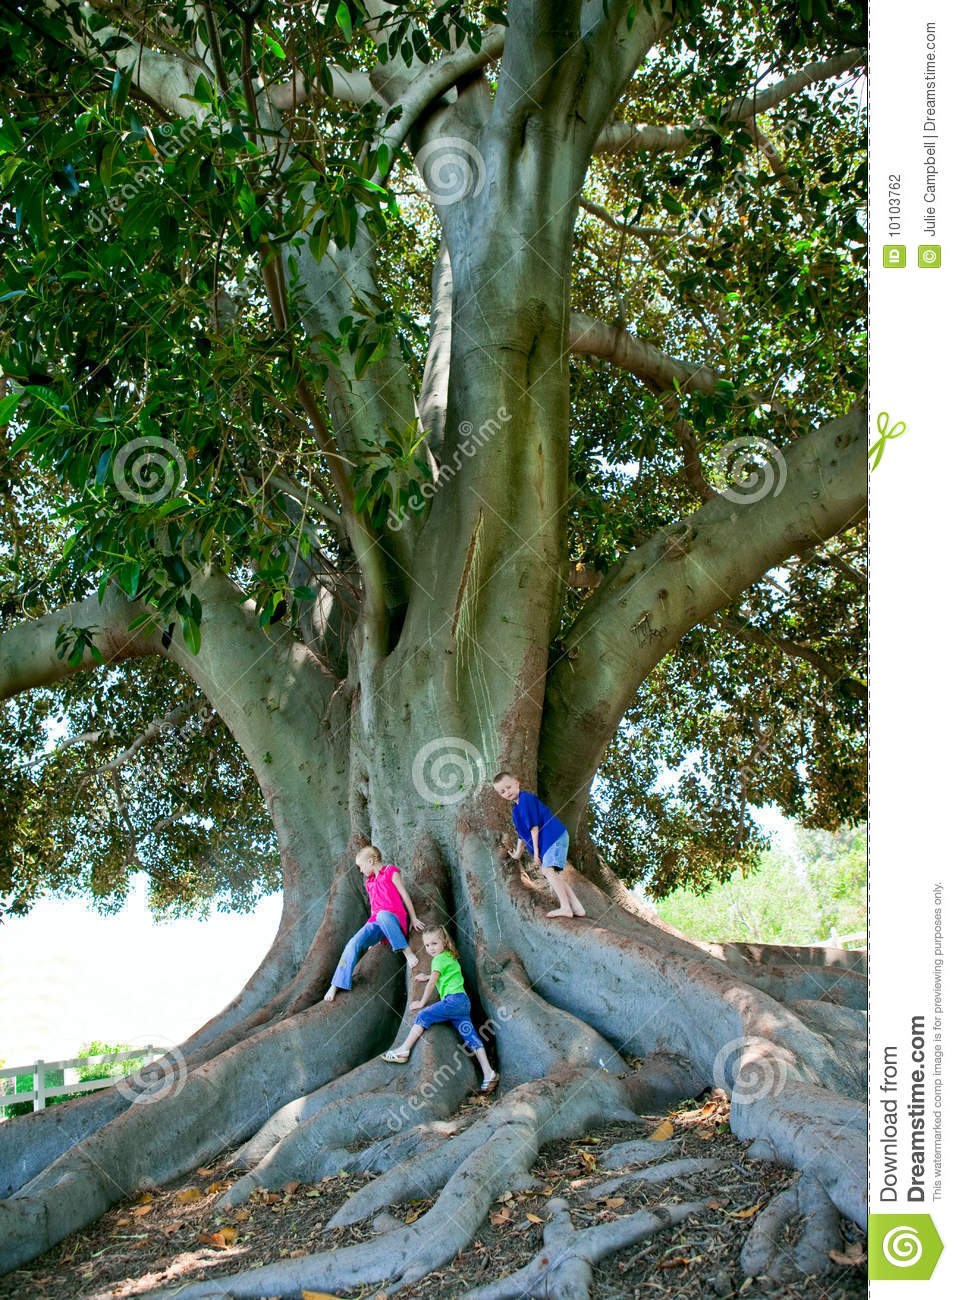 Three Children In Bright Colored T shirts Climb A Very Large Oak Tree